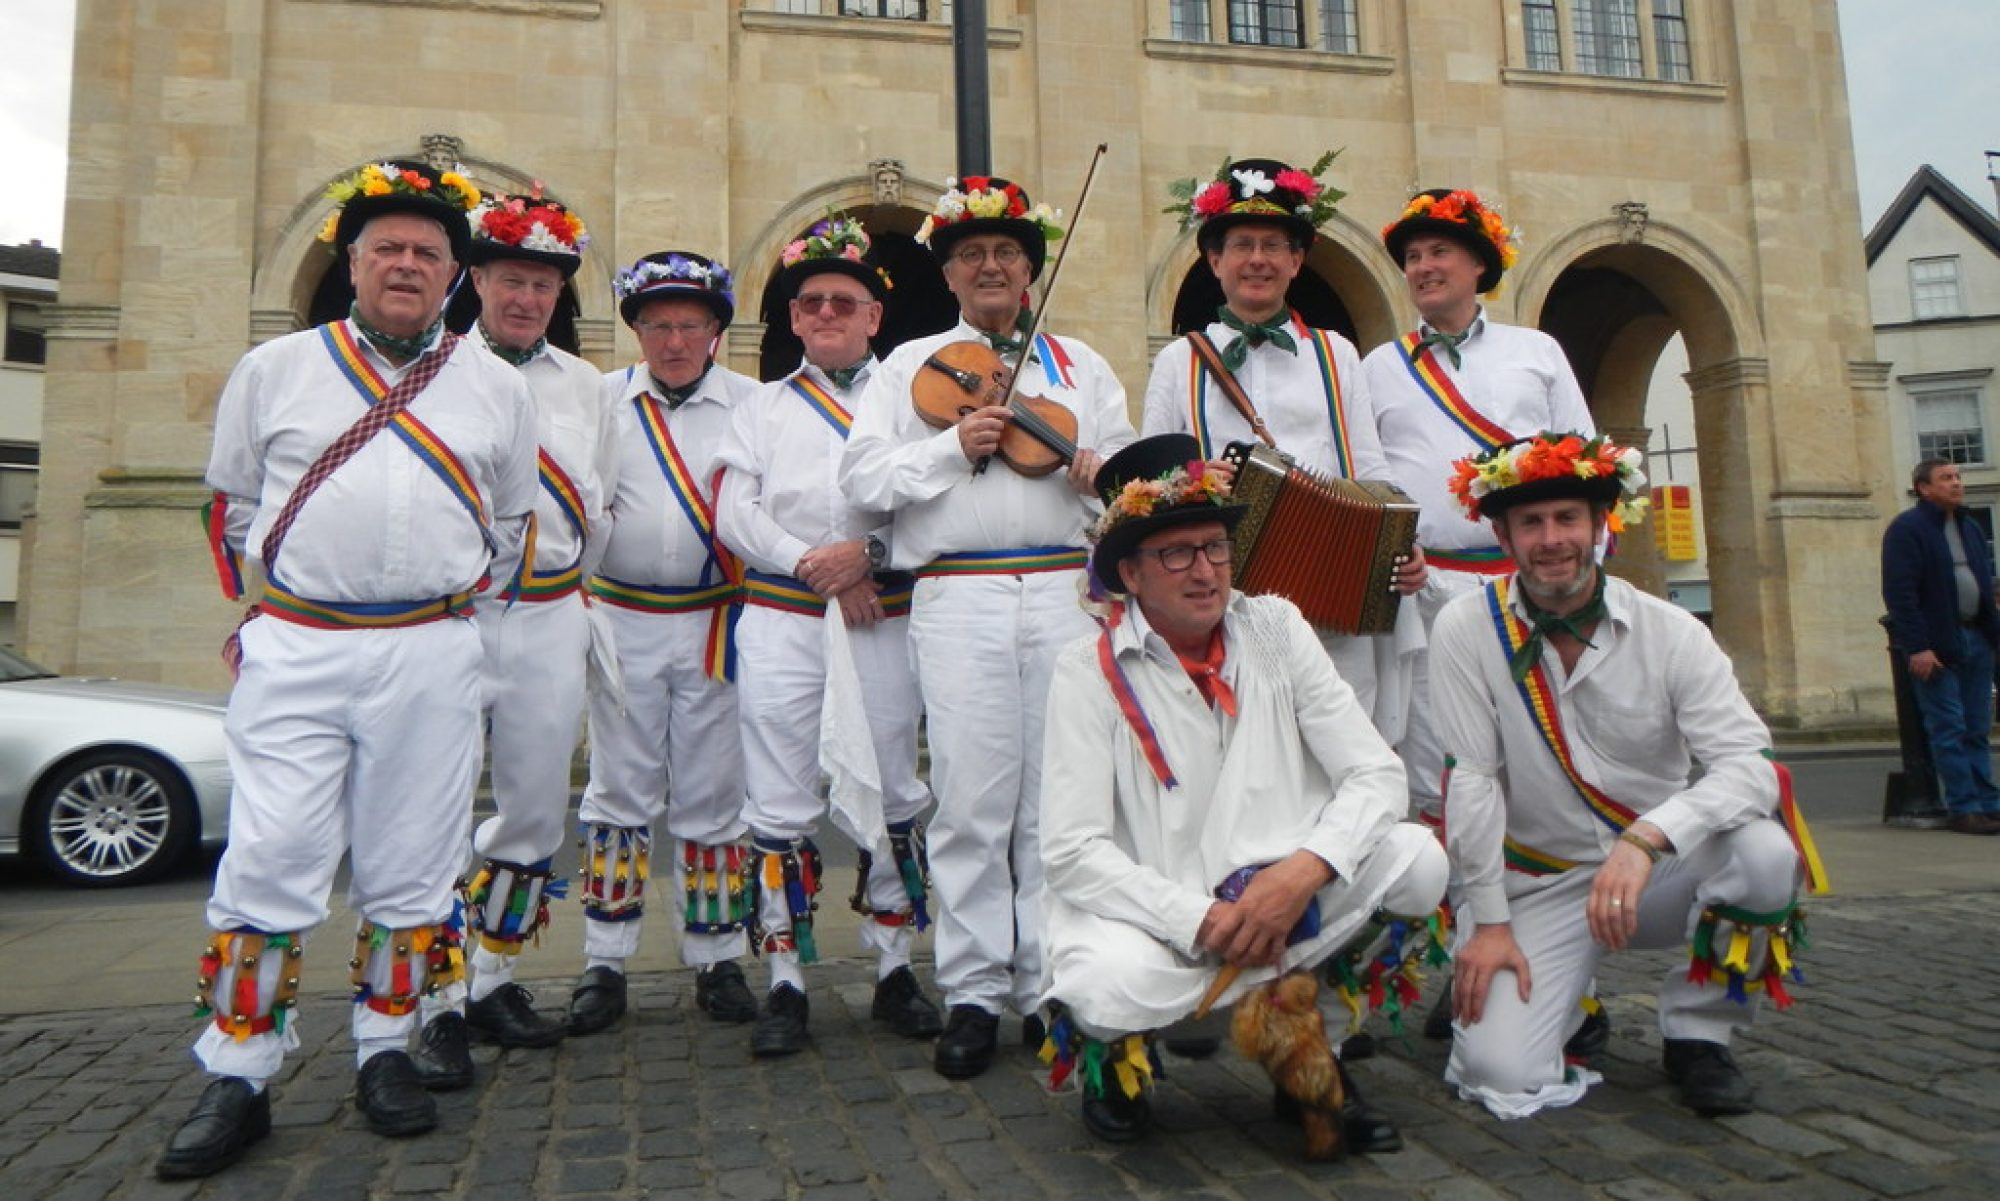 Mister Hemmings Traditional Abingdon Morris Dancers